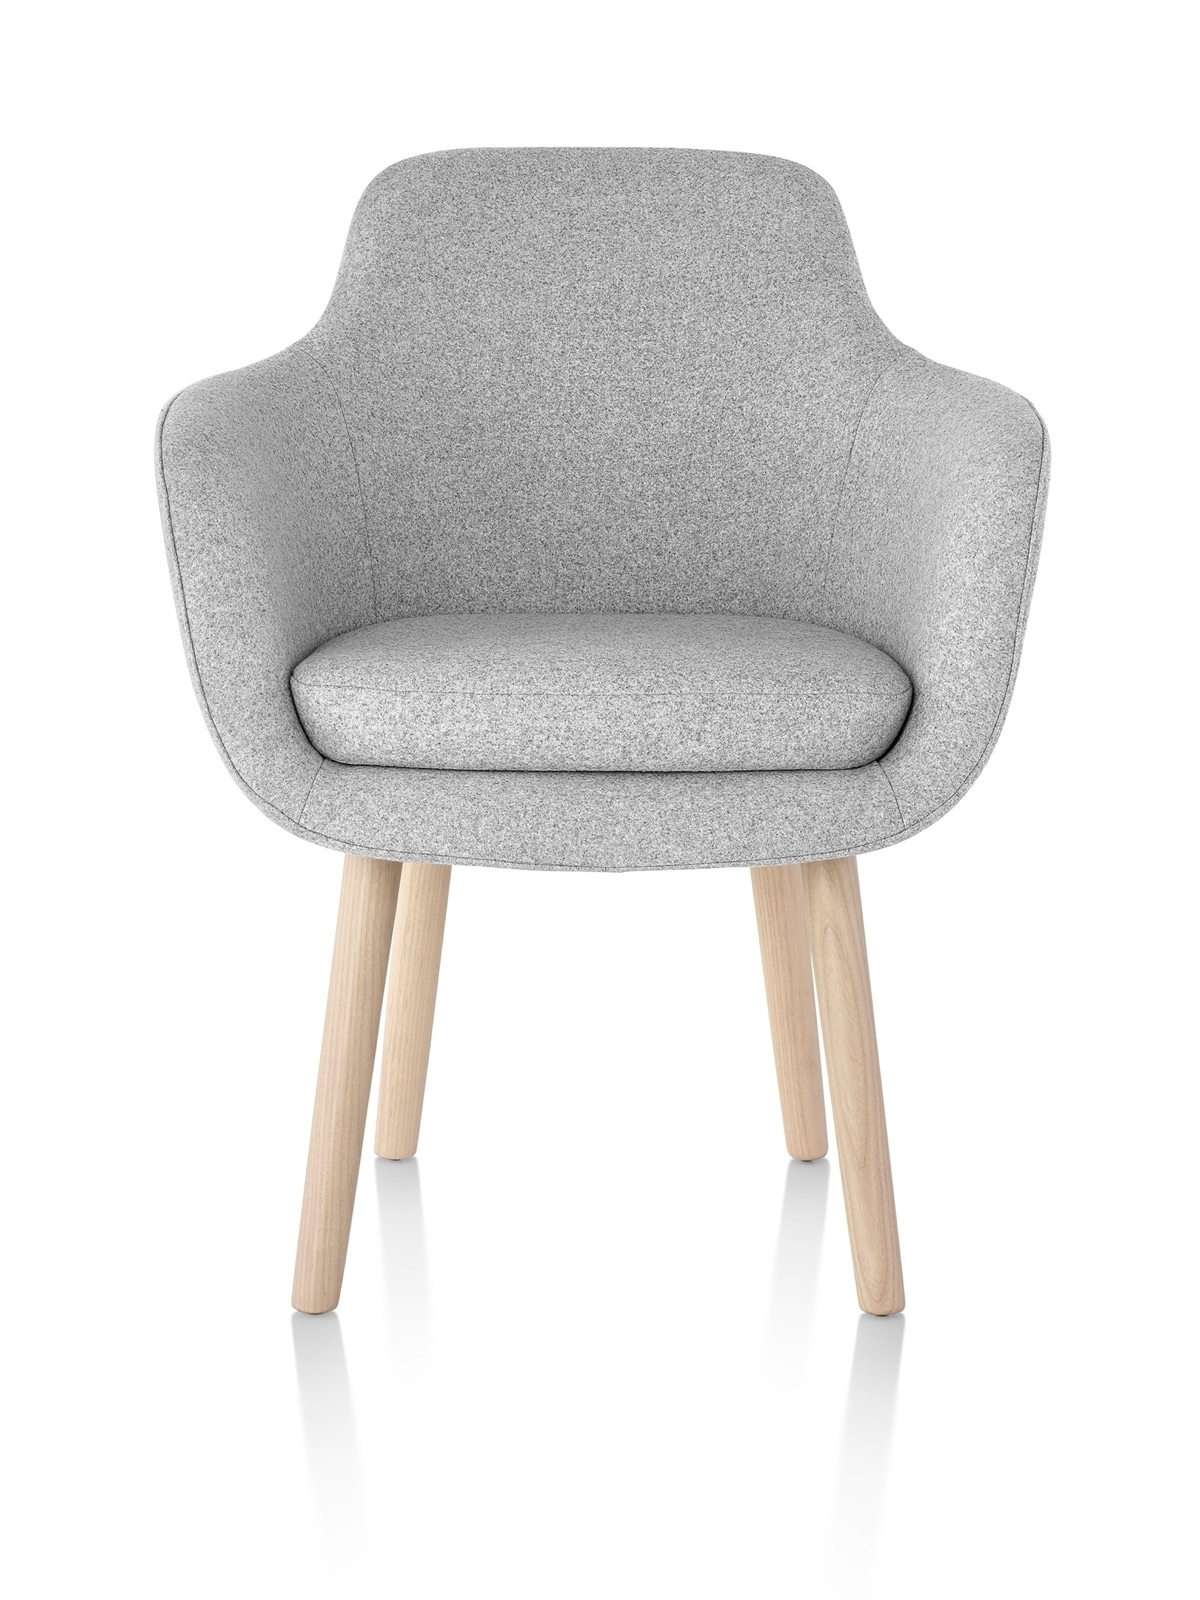 Clint Side Chairs Within Popular Guest Chairs – Herman Miller (View 8 of 20)